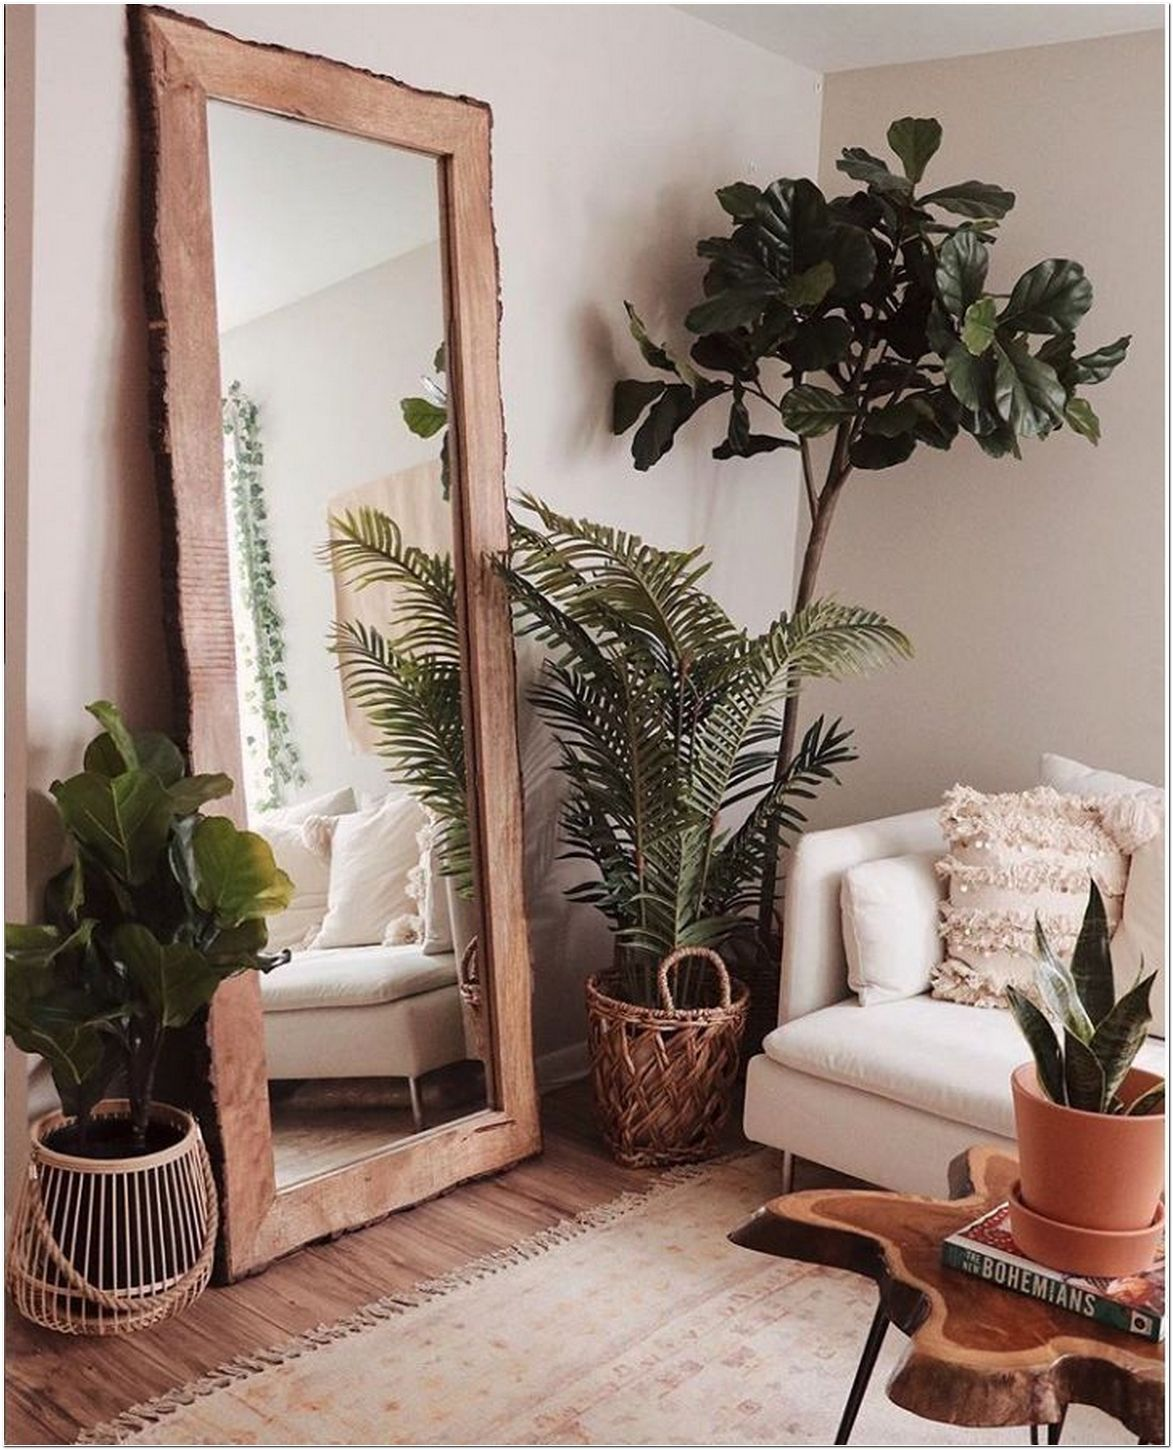 70 The Latest Trends Taking Over The World Of Interior Design 10 In 2020 Home Decor Inspiration House Interior Bohemian Bedroom Decor